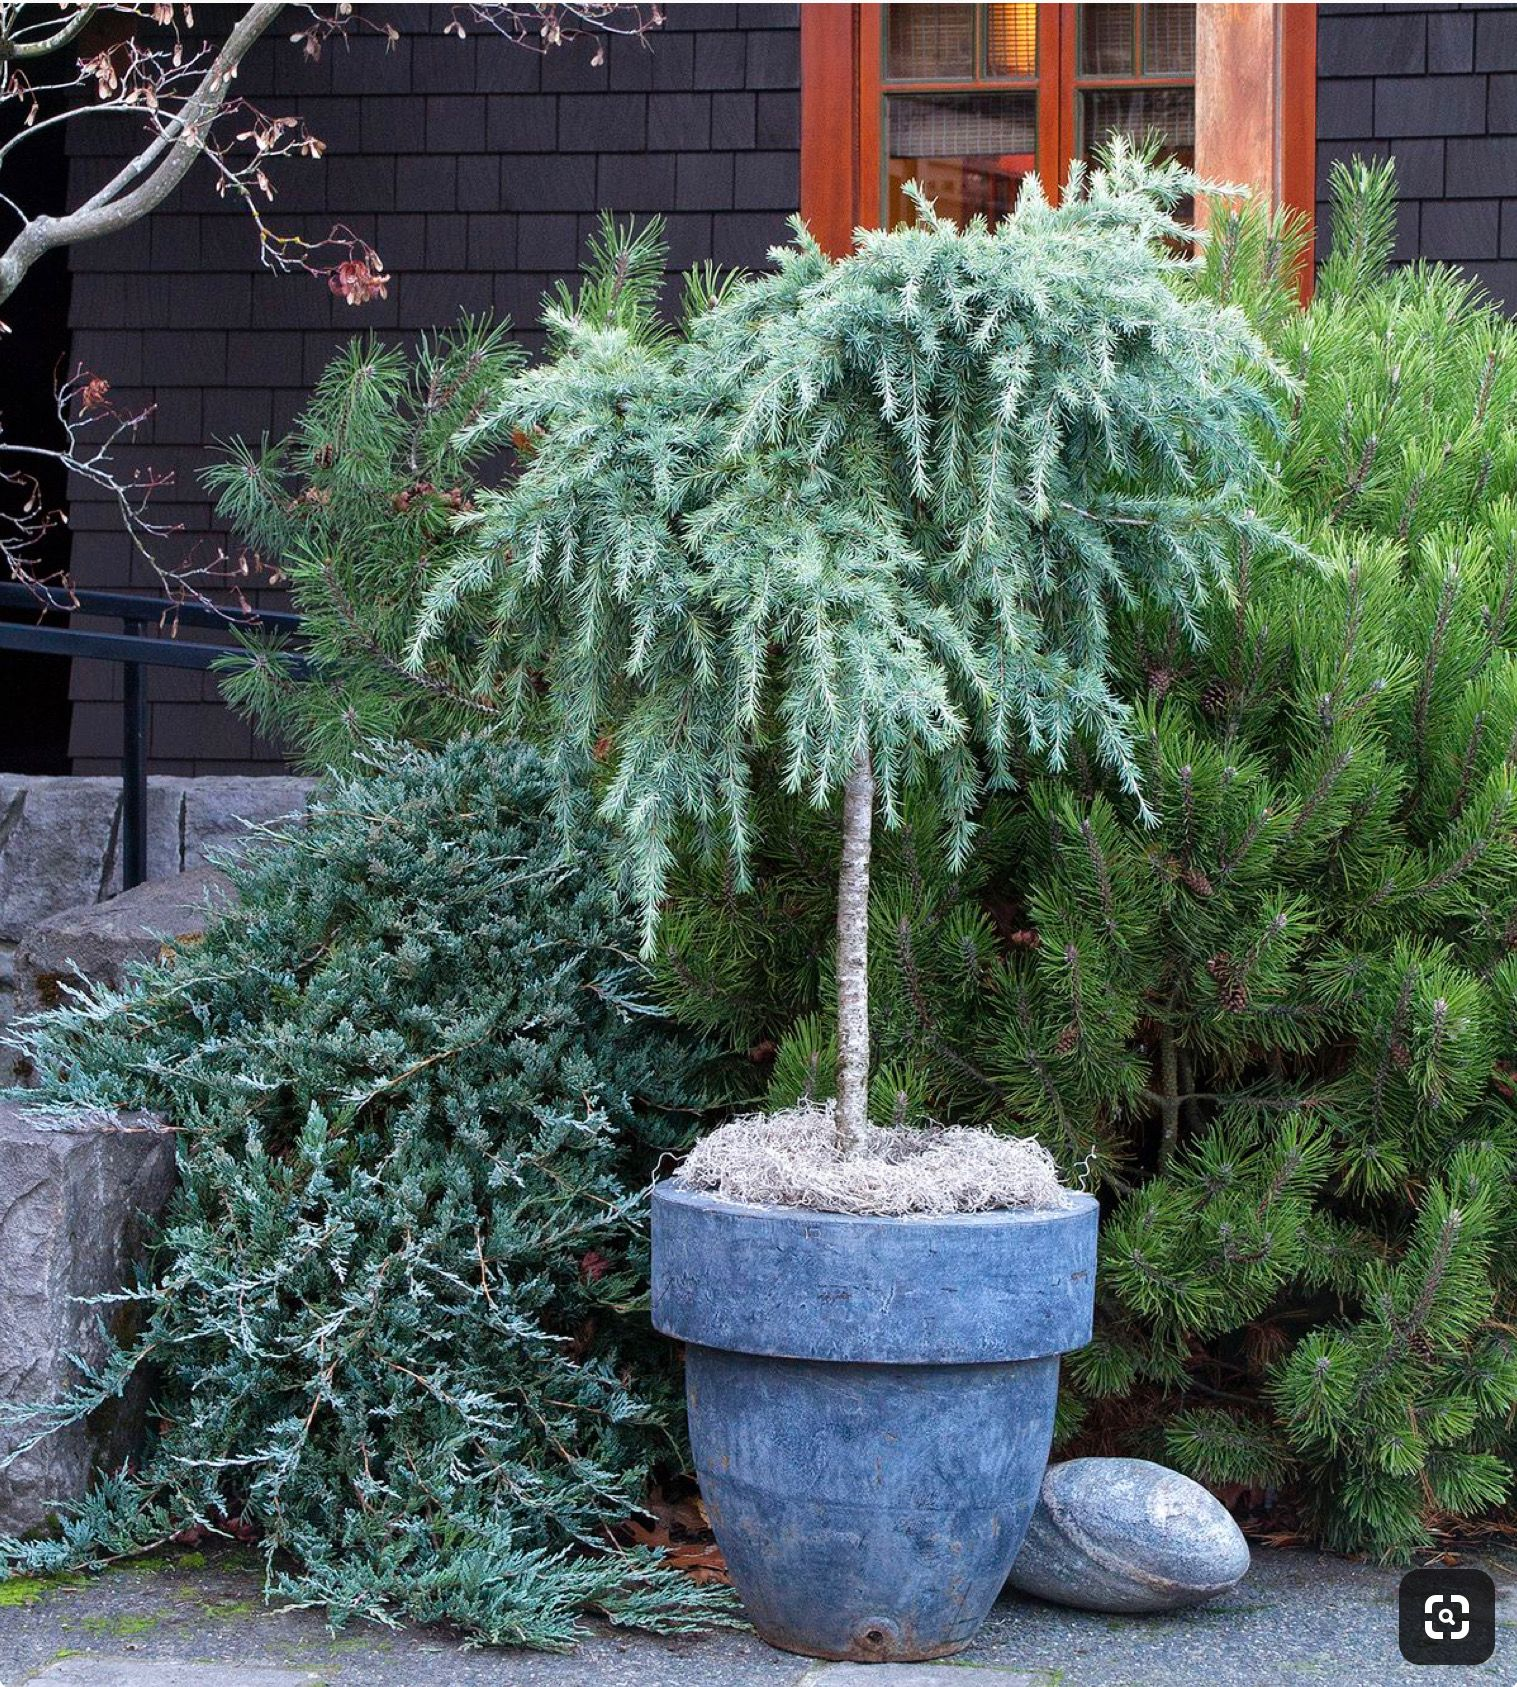 Dwarf Shrubs Trees And Potted Patio Winter Plants